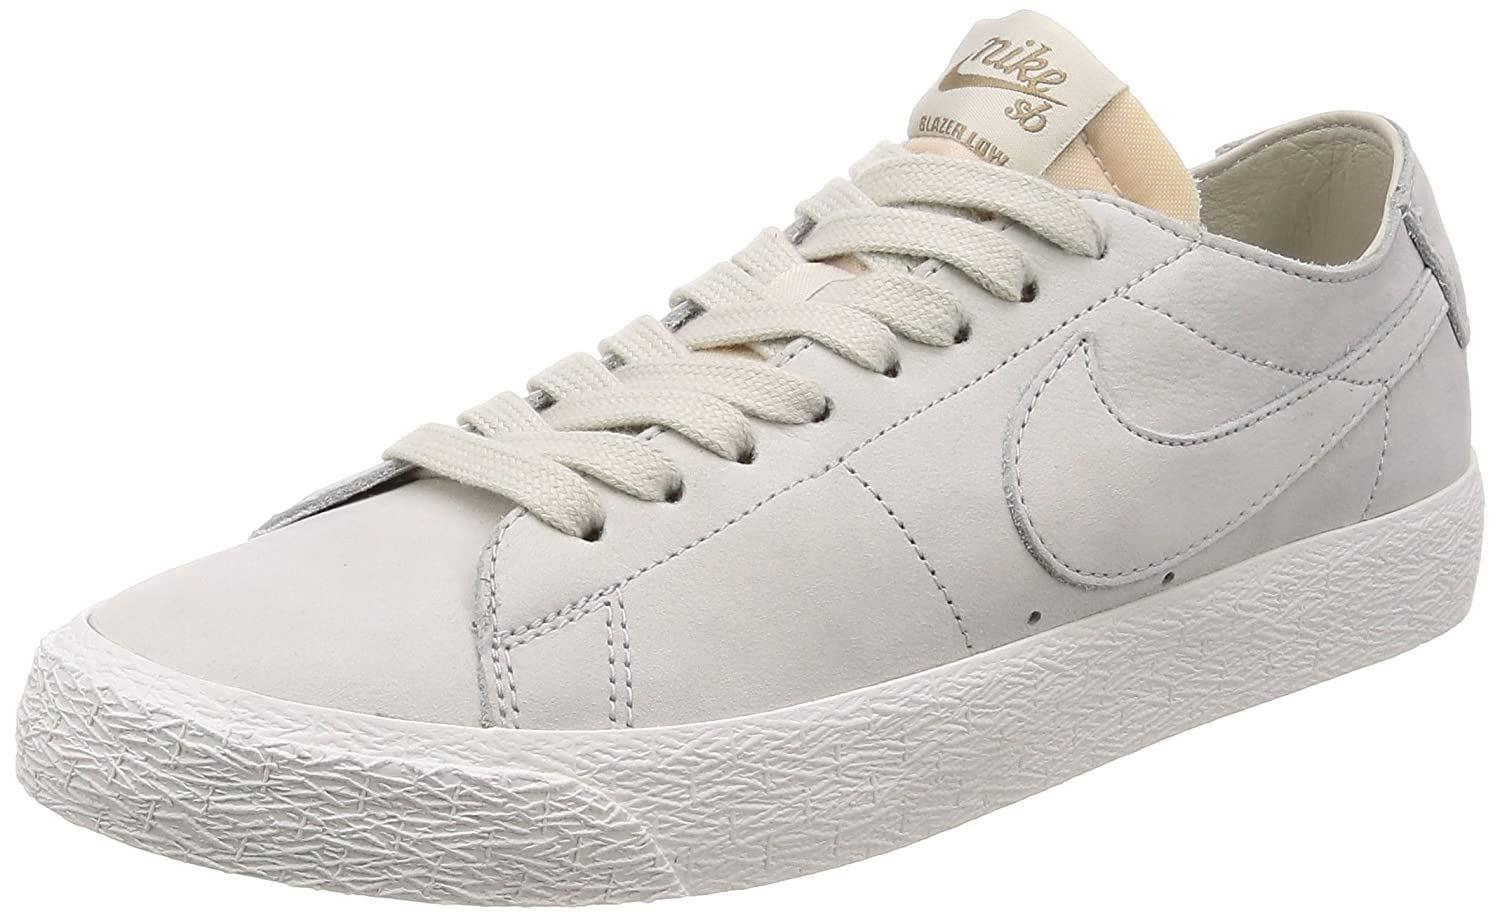 wholesale dealer fb19f 674ae Nike Men s SB Zoom Blazer Low Decon, Light Bone Khaki, 9.5 M US   Amazon.com.au  Fashion